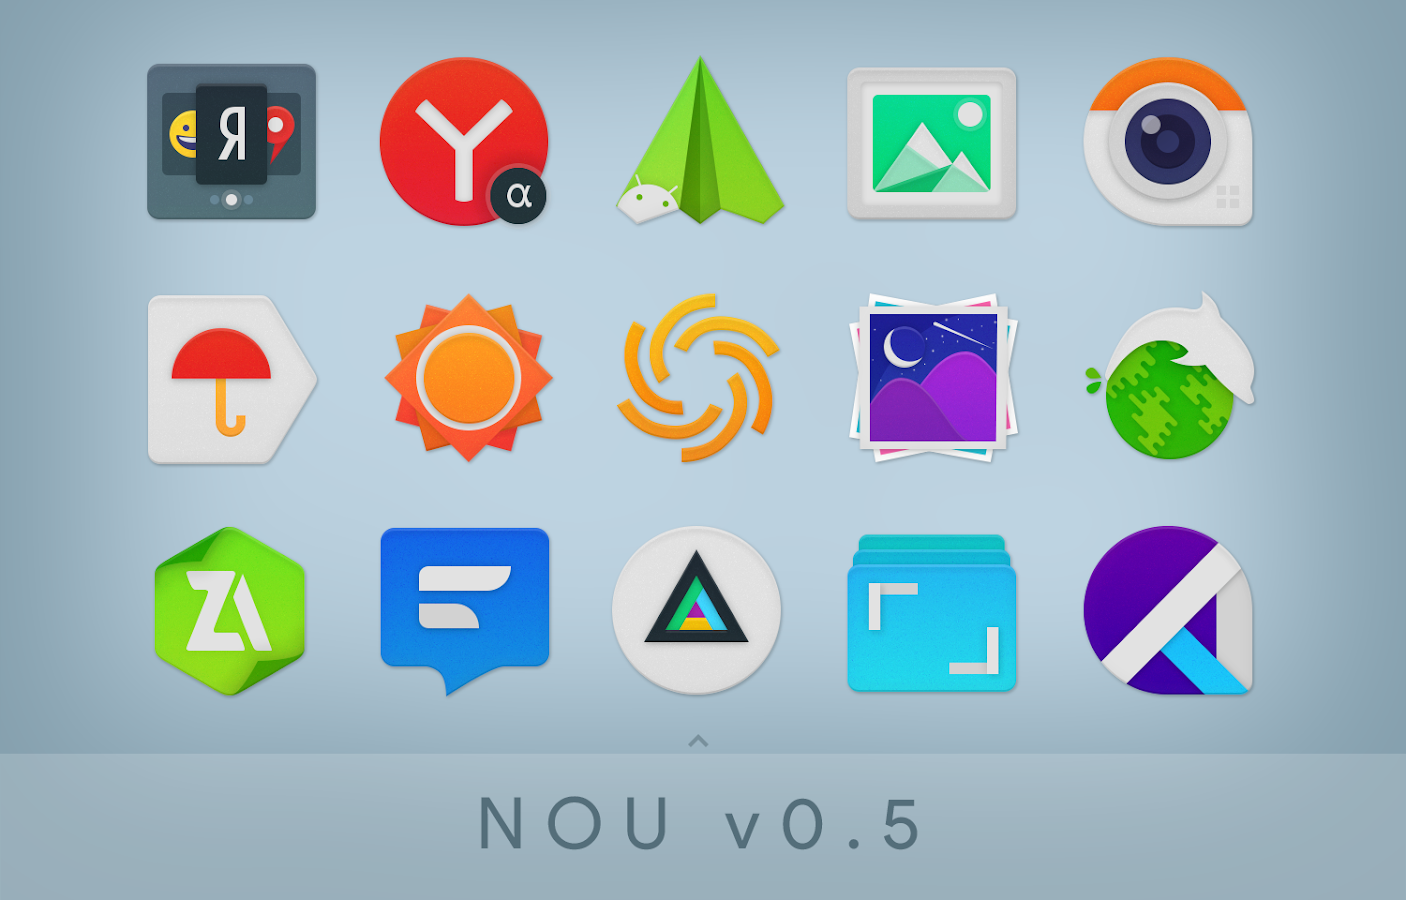 NOU - Icon Pack Screenshot 5